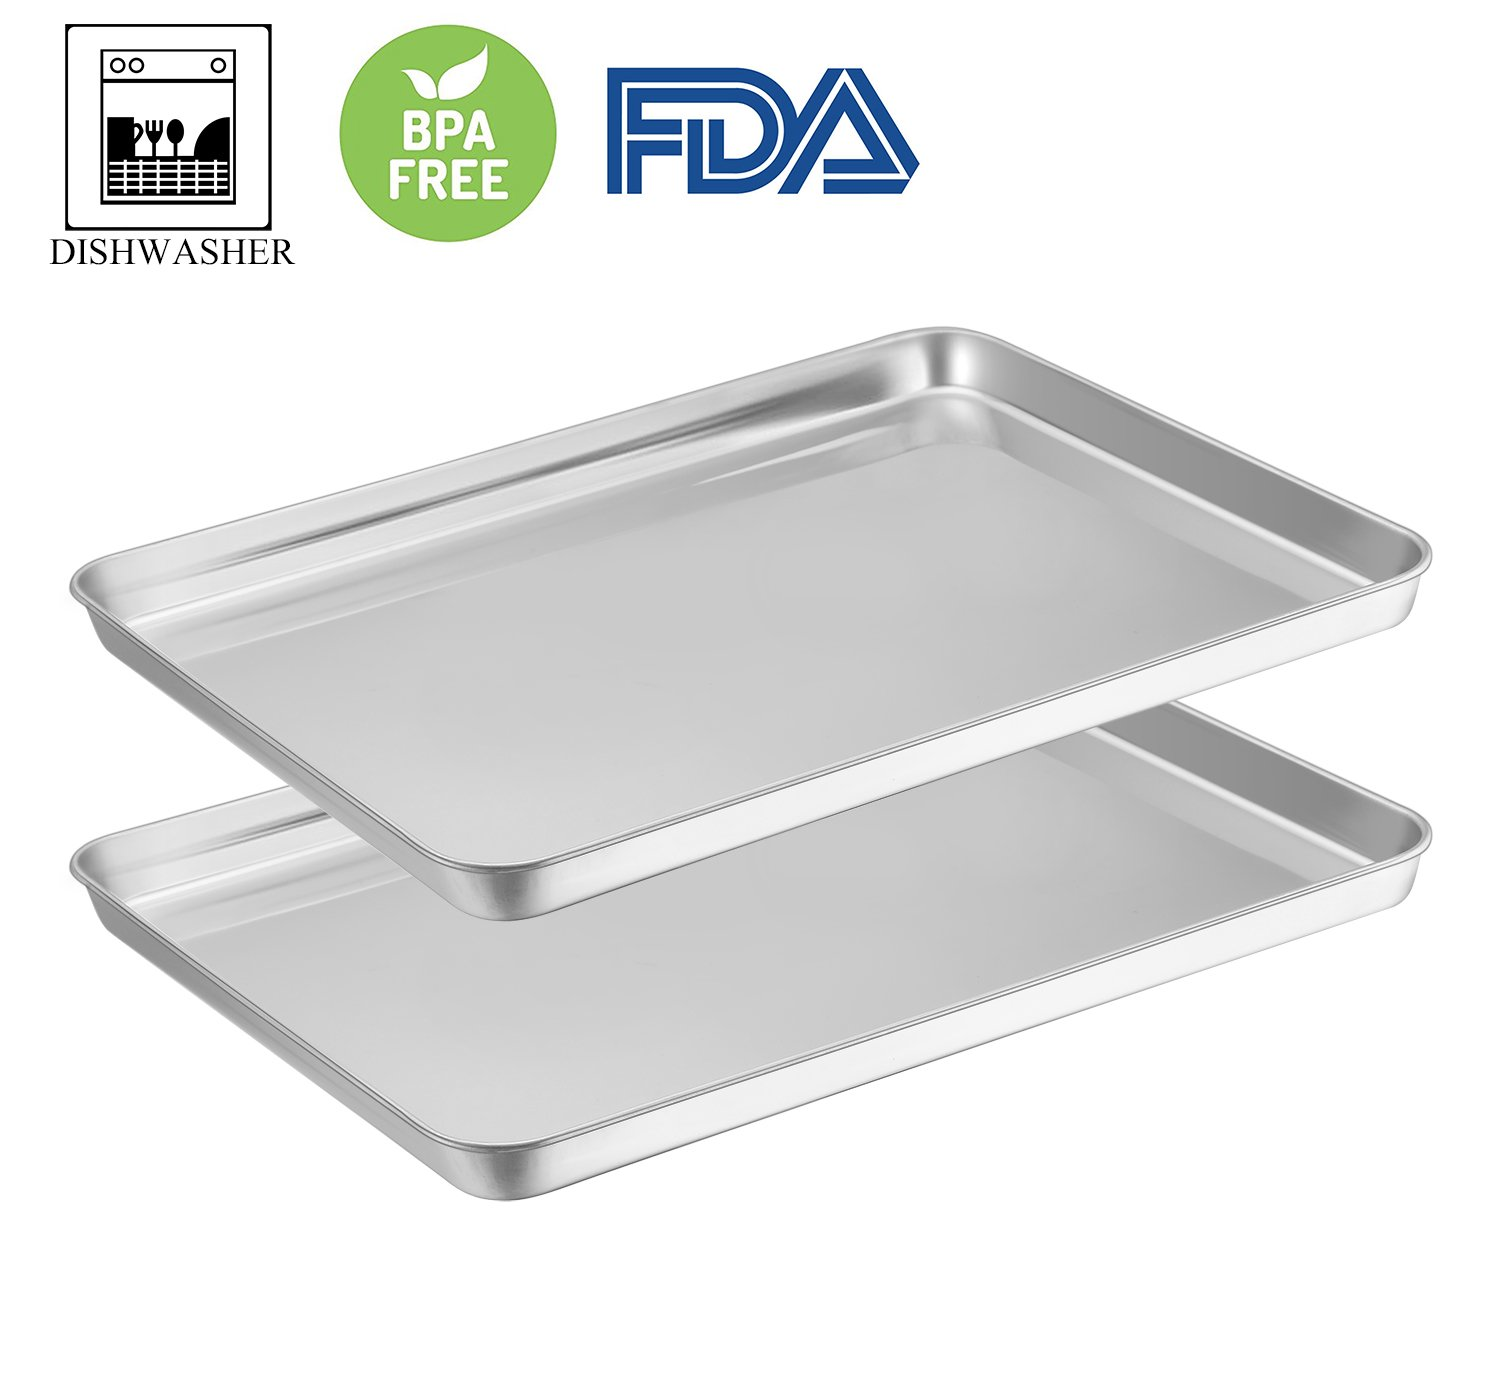 Baking Sheets Set of 2, E-far Baking Pan Cookie Sheet Stainless Steel Baking Tray 16''x12''x1'' Rectangle Size, Rust Resistance & Easy Clean, Dishwasher Safe - 2 Pieces